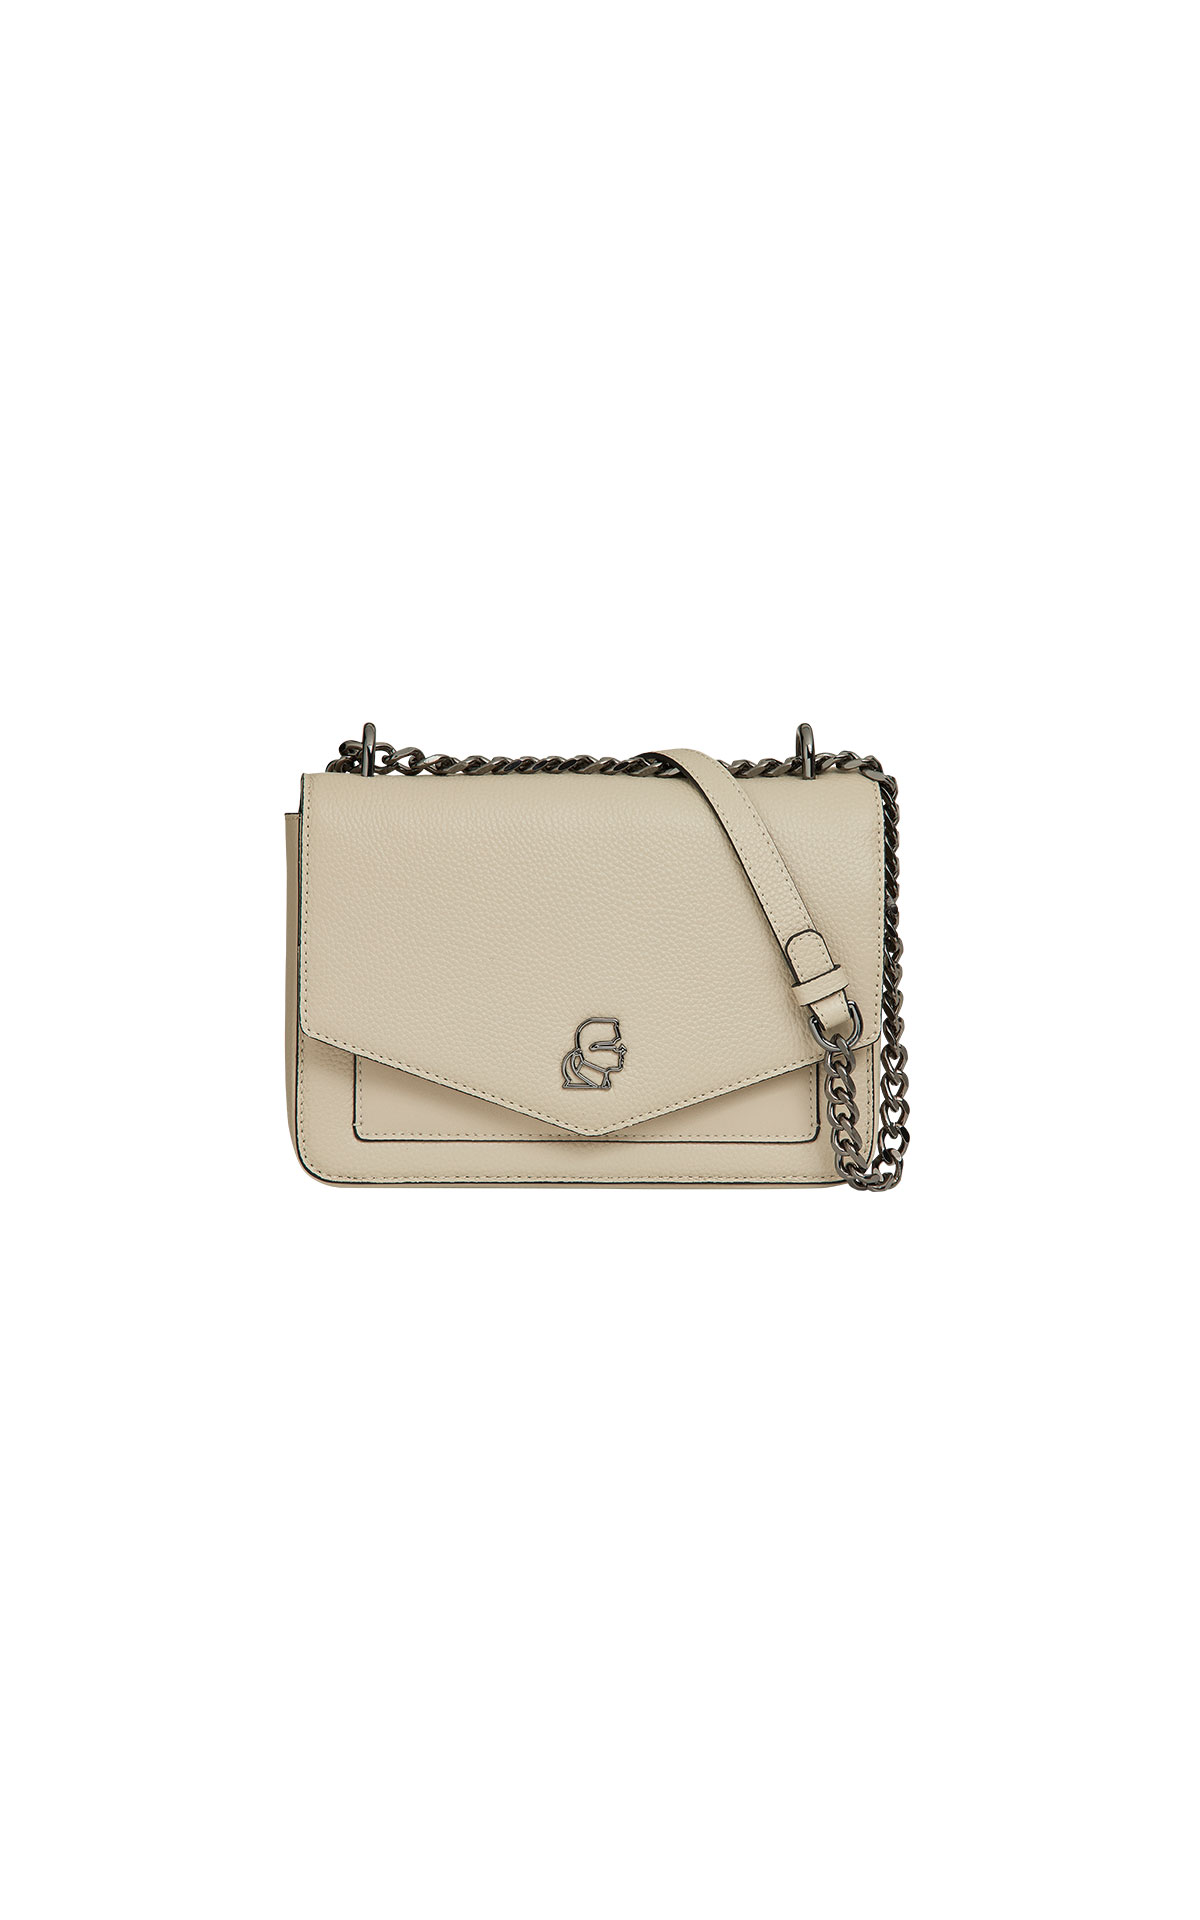 Karl Lagerfeld Pebble Shoulder Bag at the Bicester Village Shopping Collection